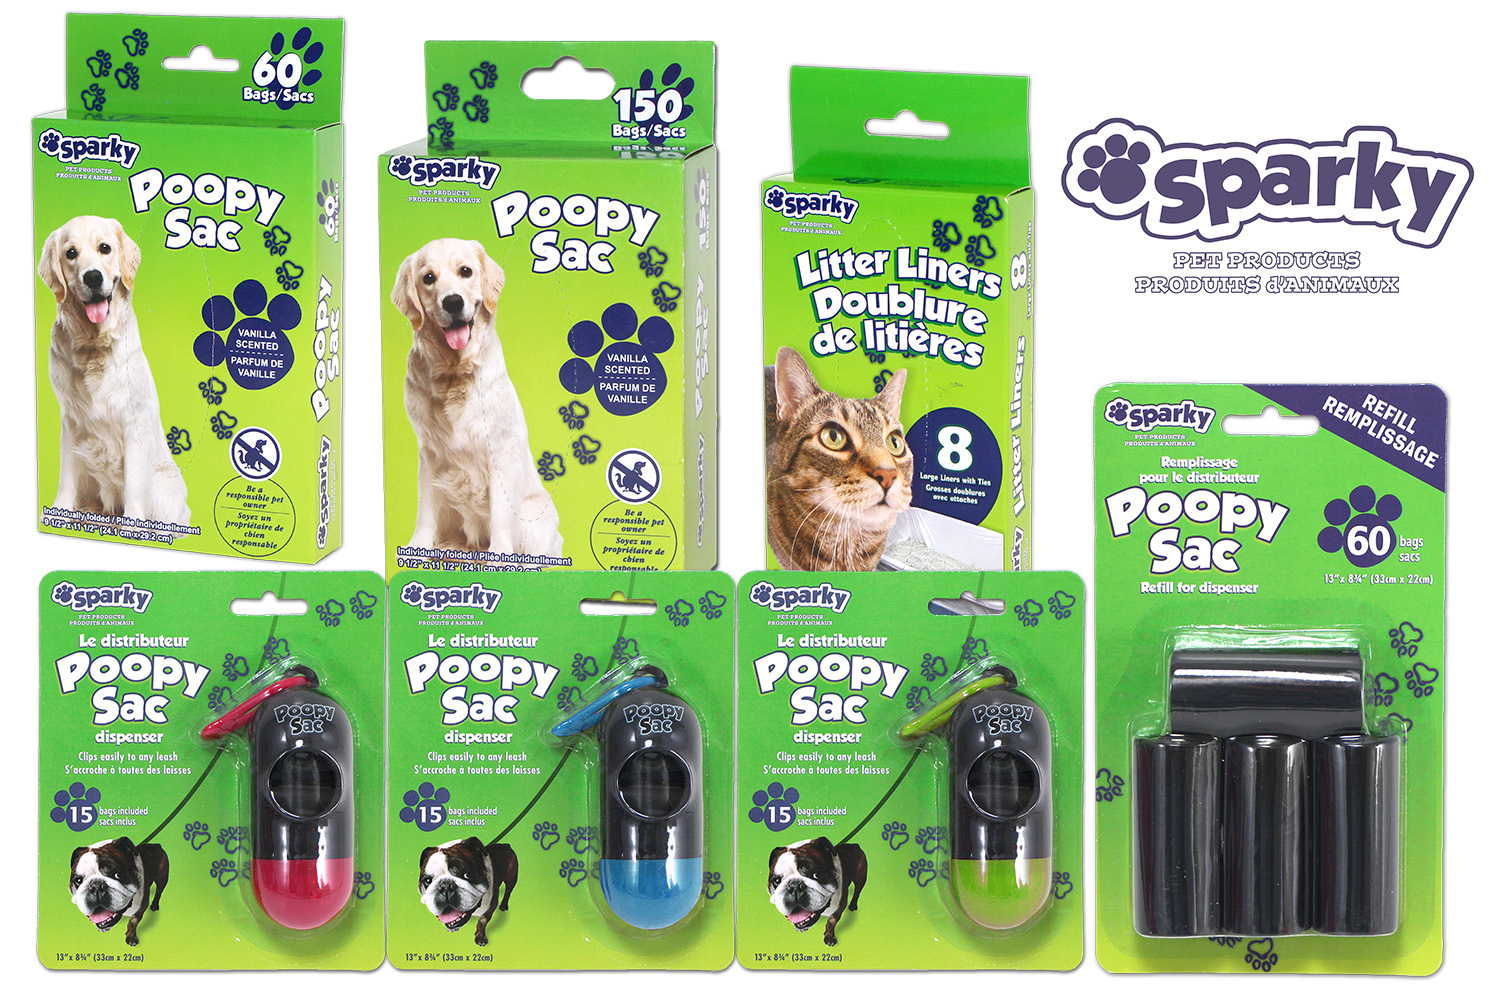 Sparky Pet Products:  New Look, Same Tuff Quality